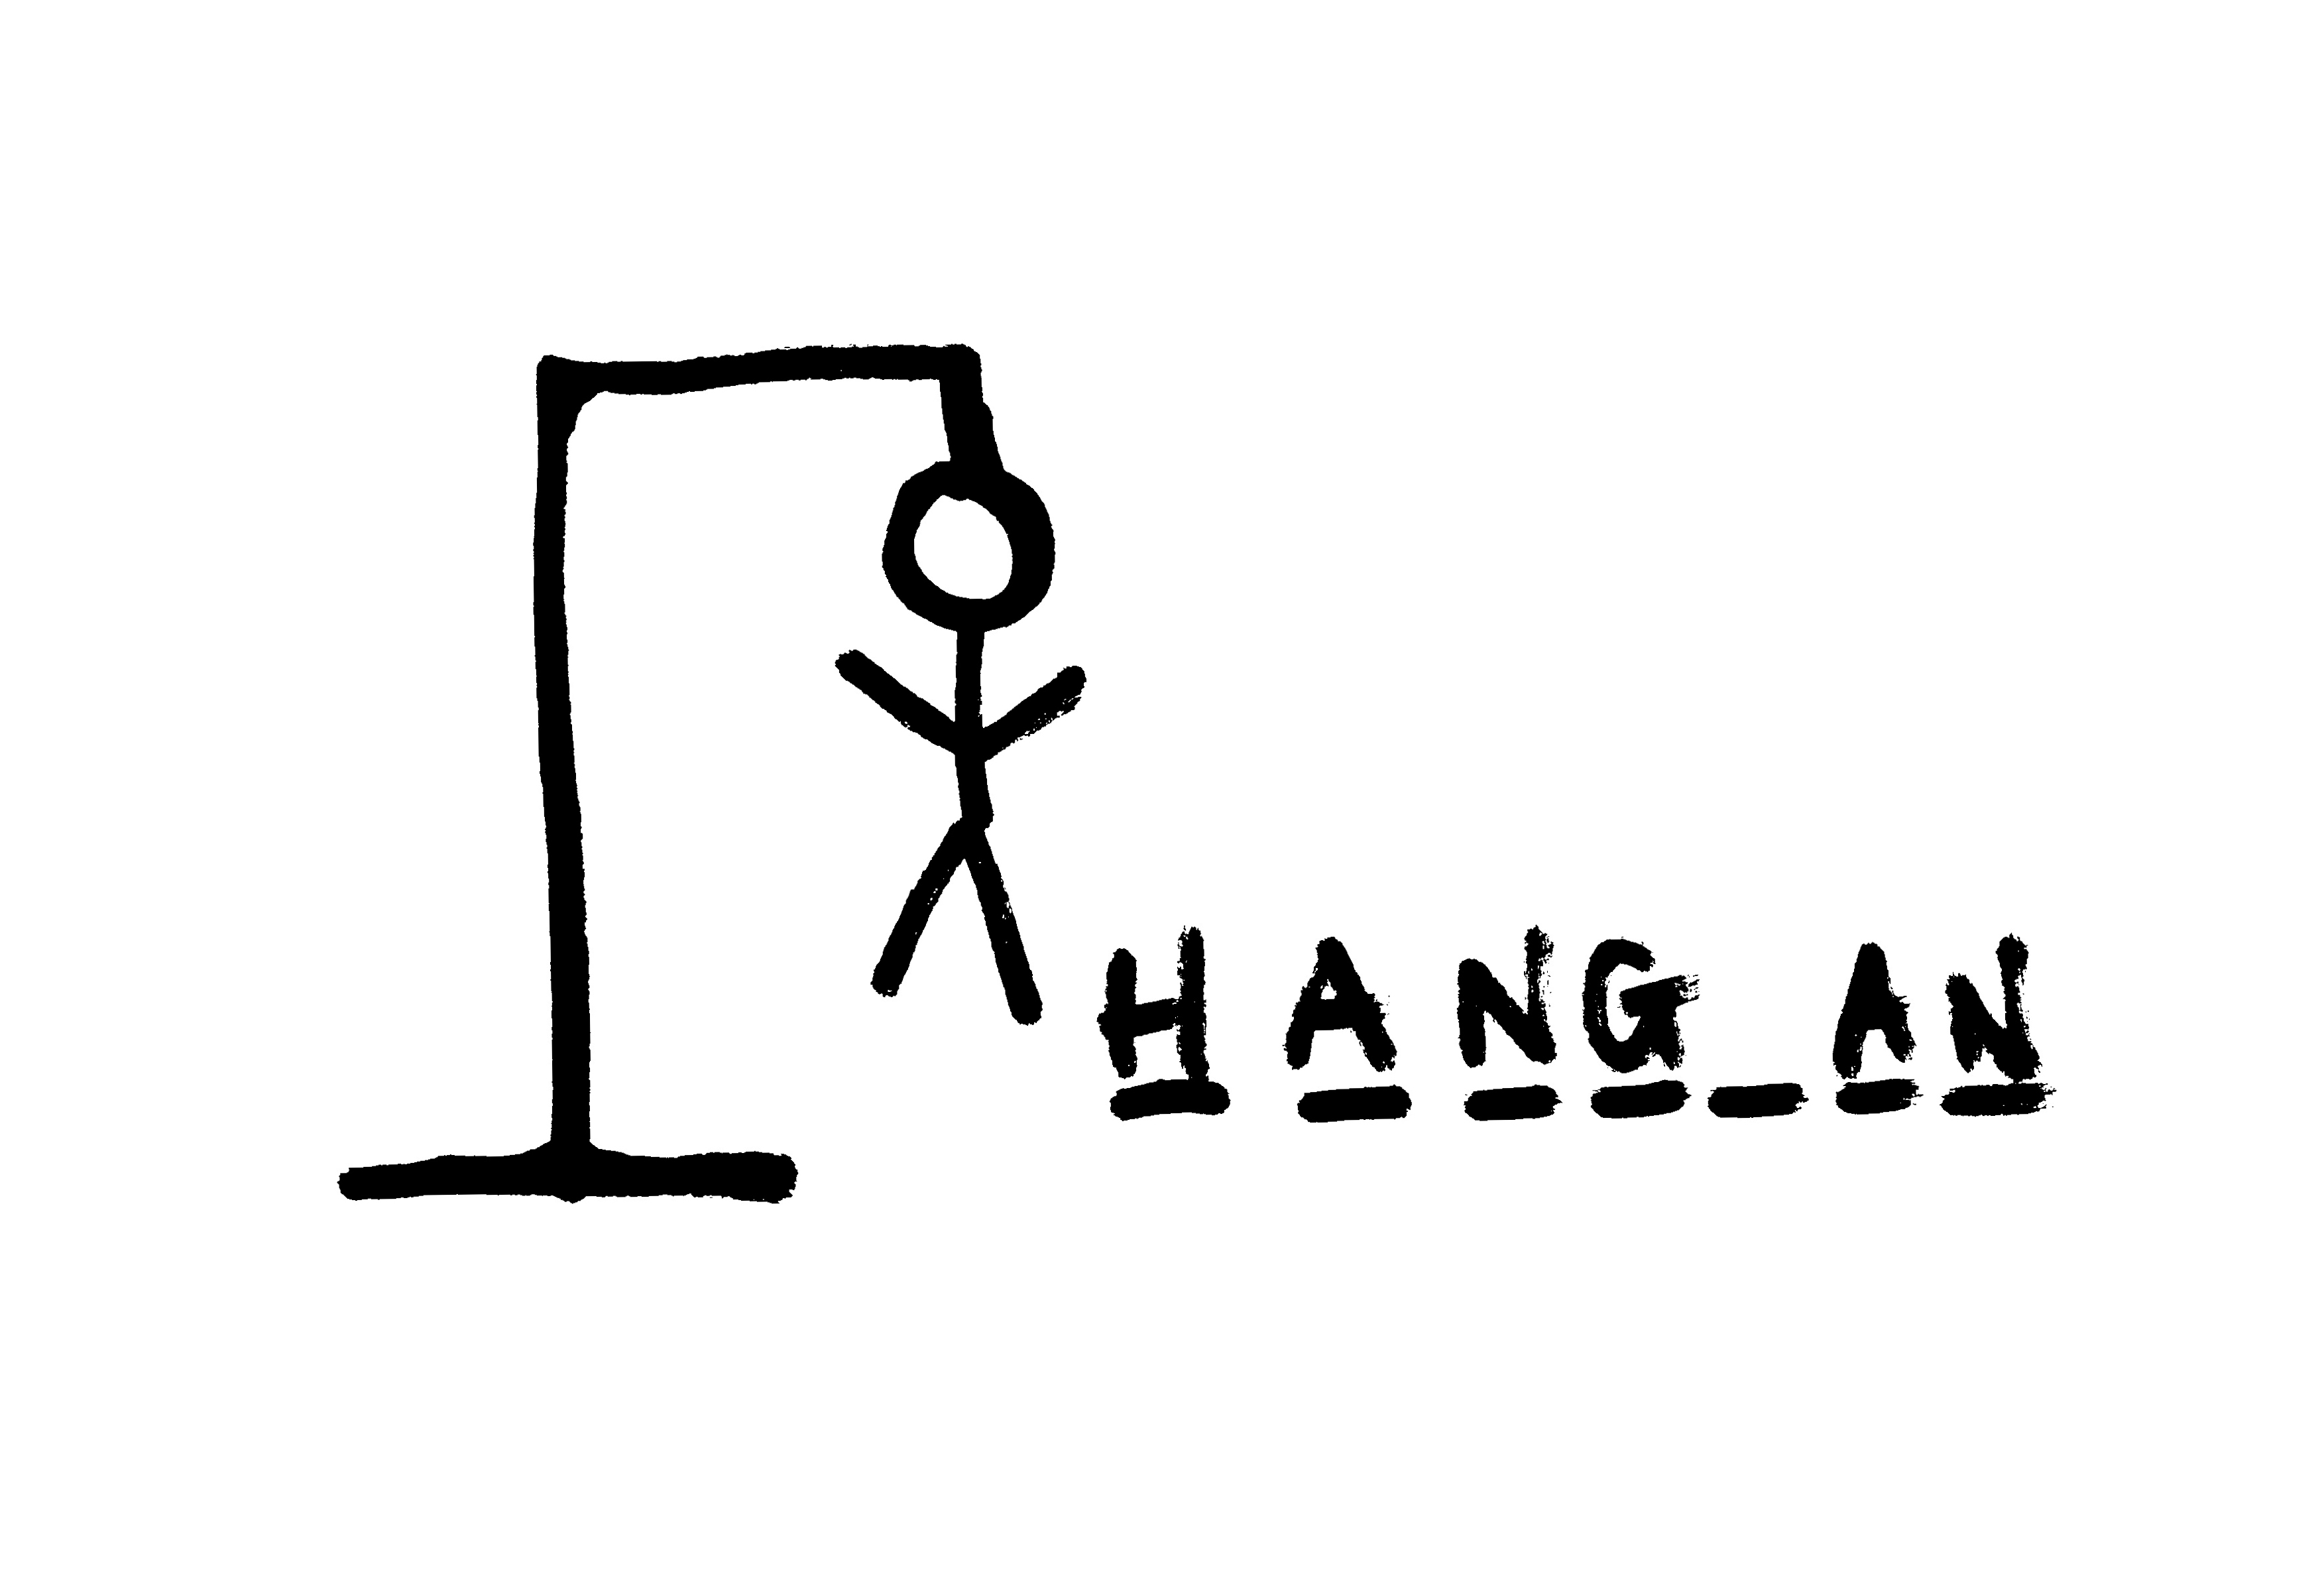 Hanged vs. hung – not the same!